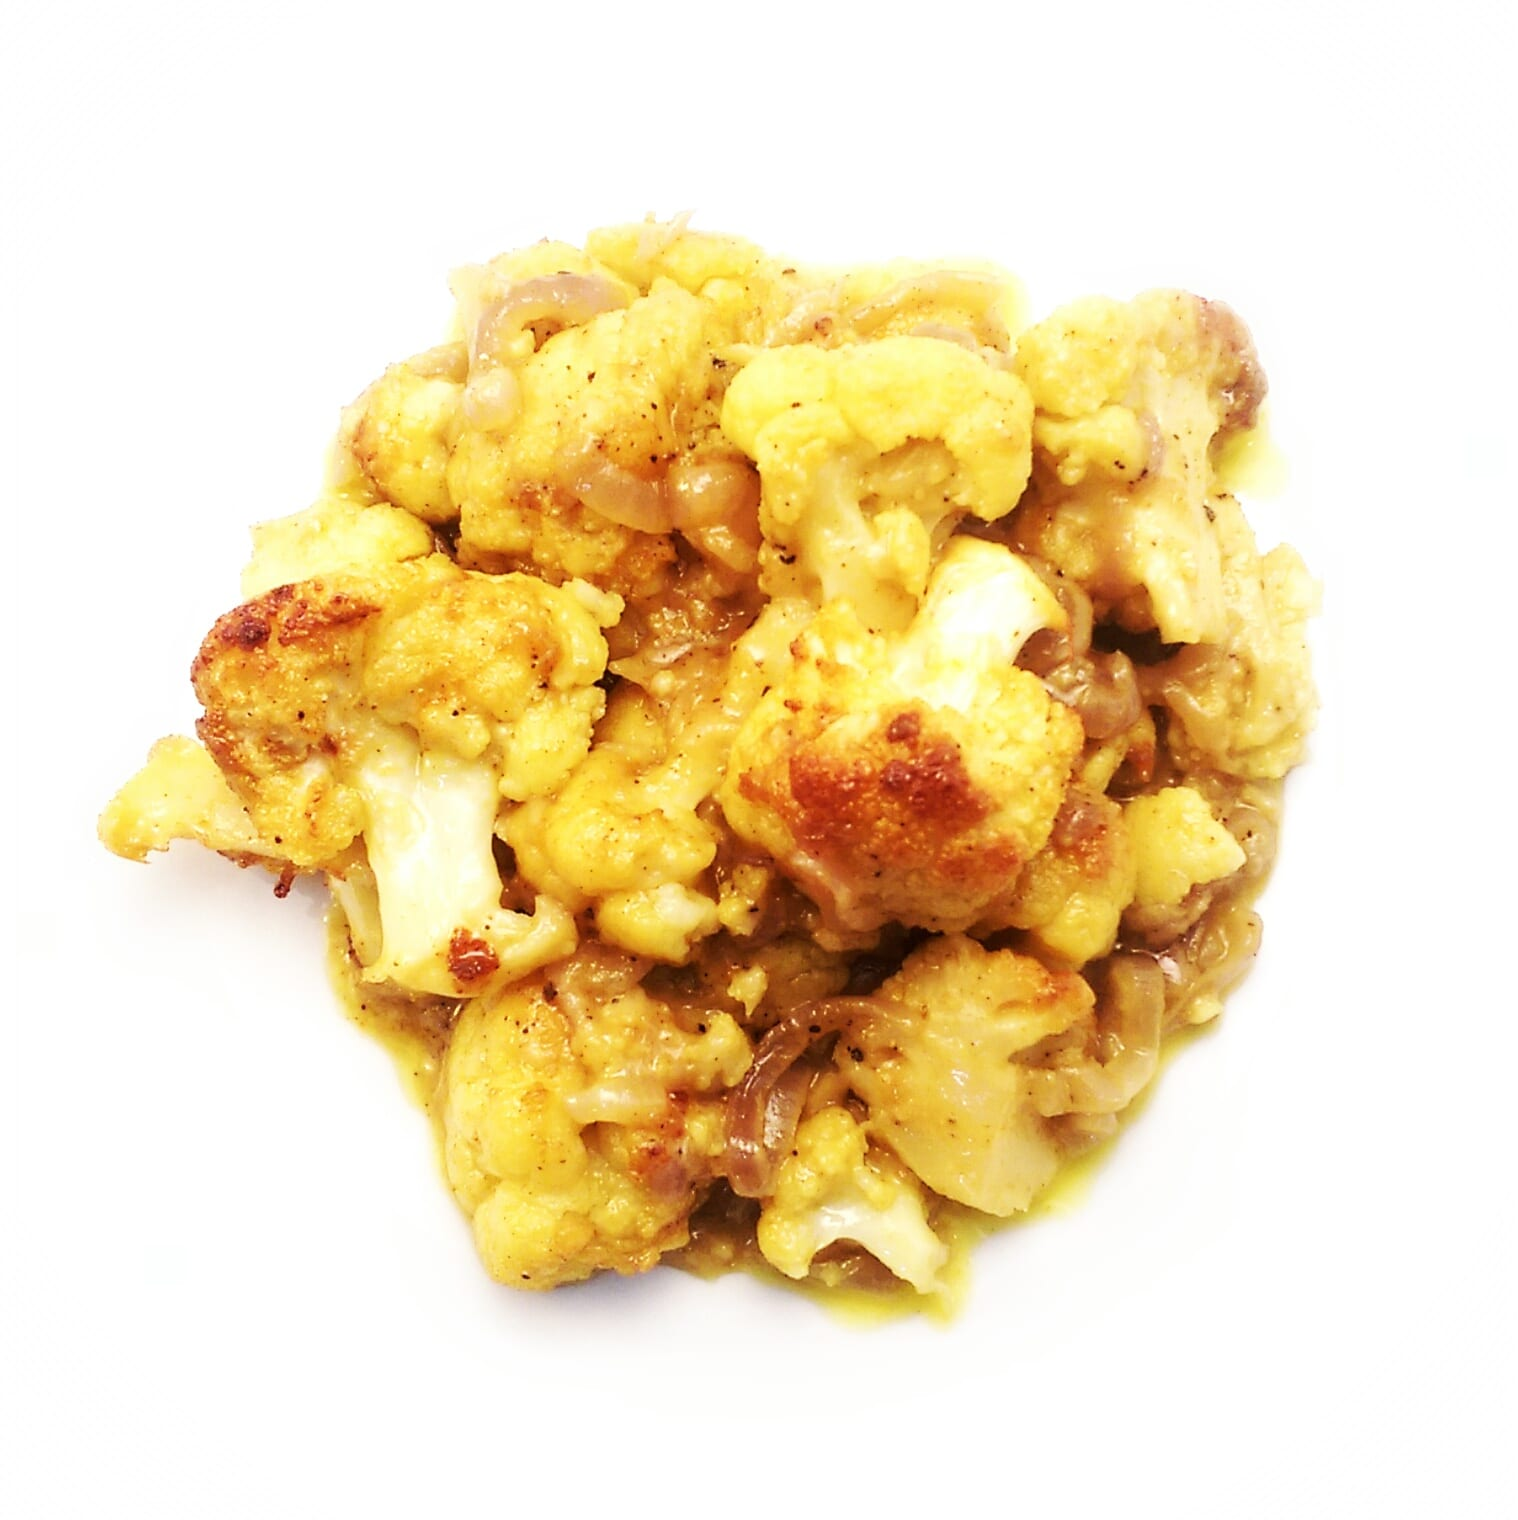 melted cauliflower on a plate